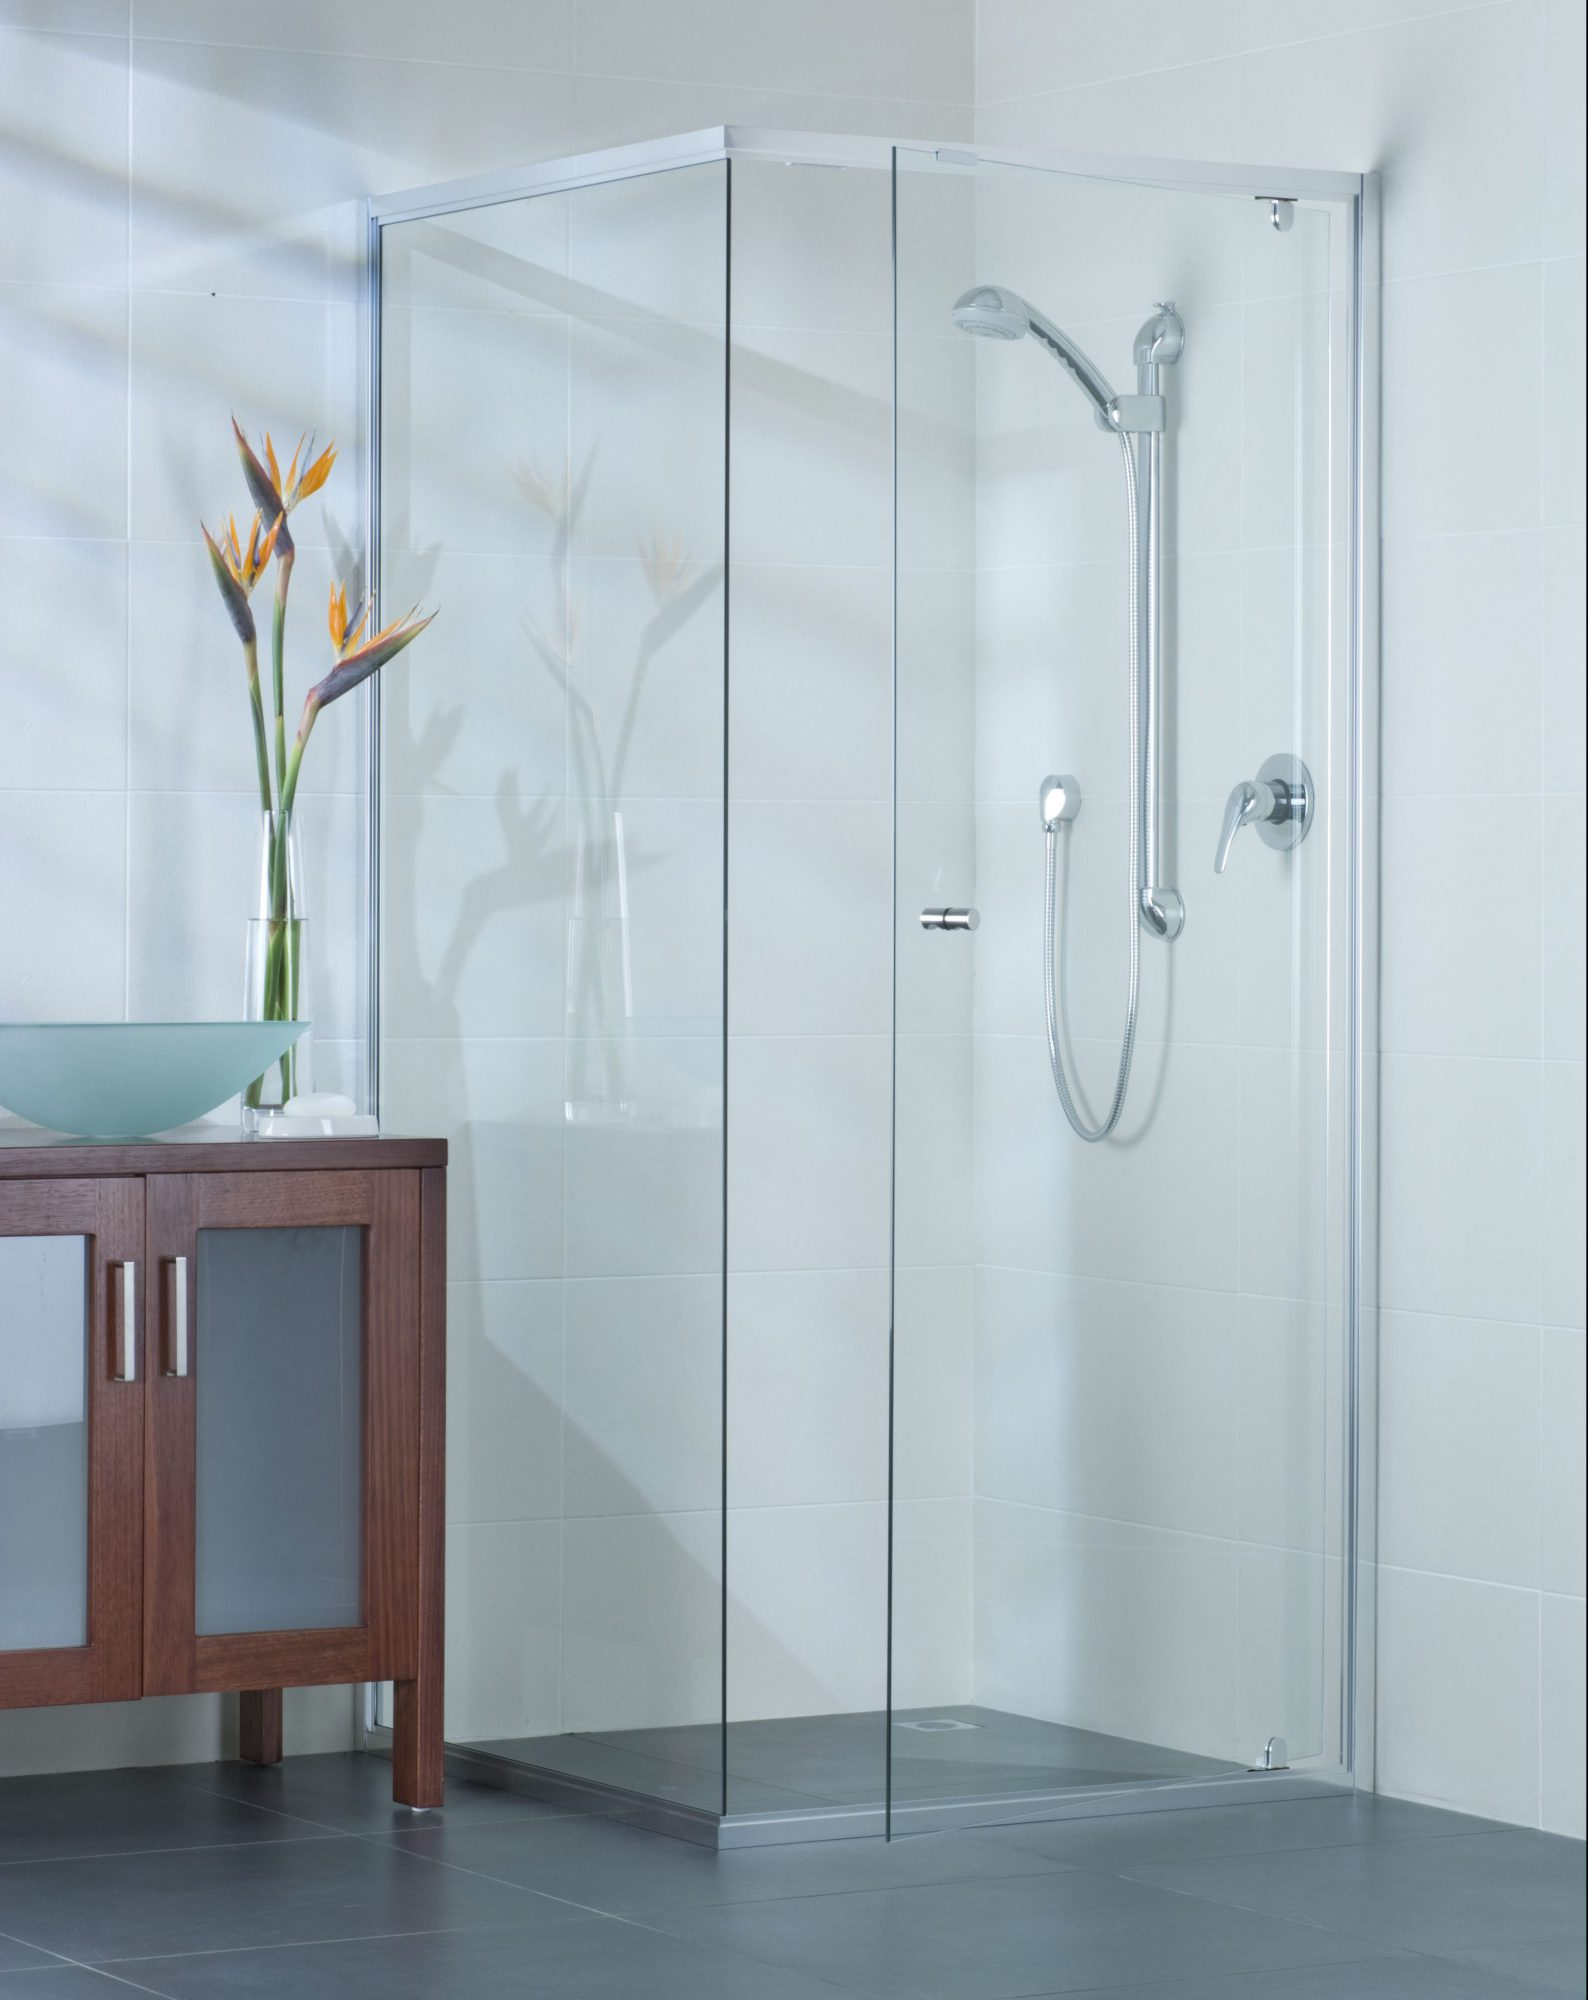 Captivating The U201cless Frame, More Styleu201d Semi Frameless Shower Screen